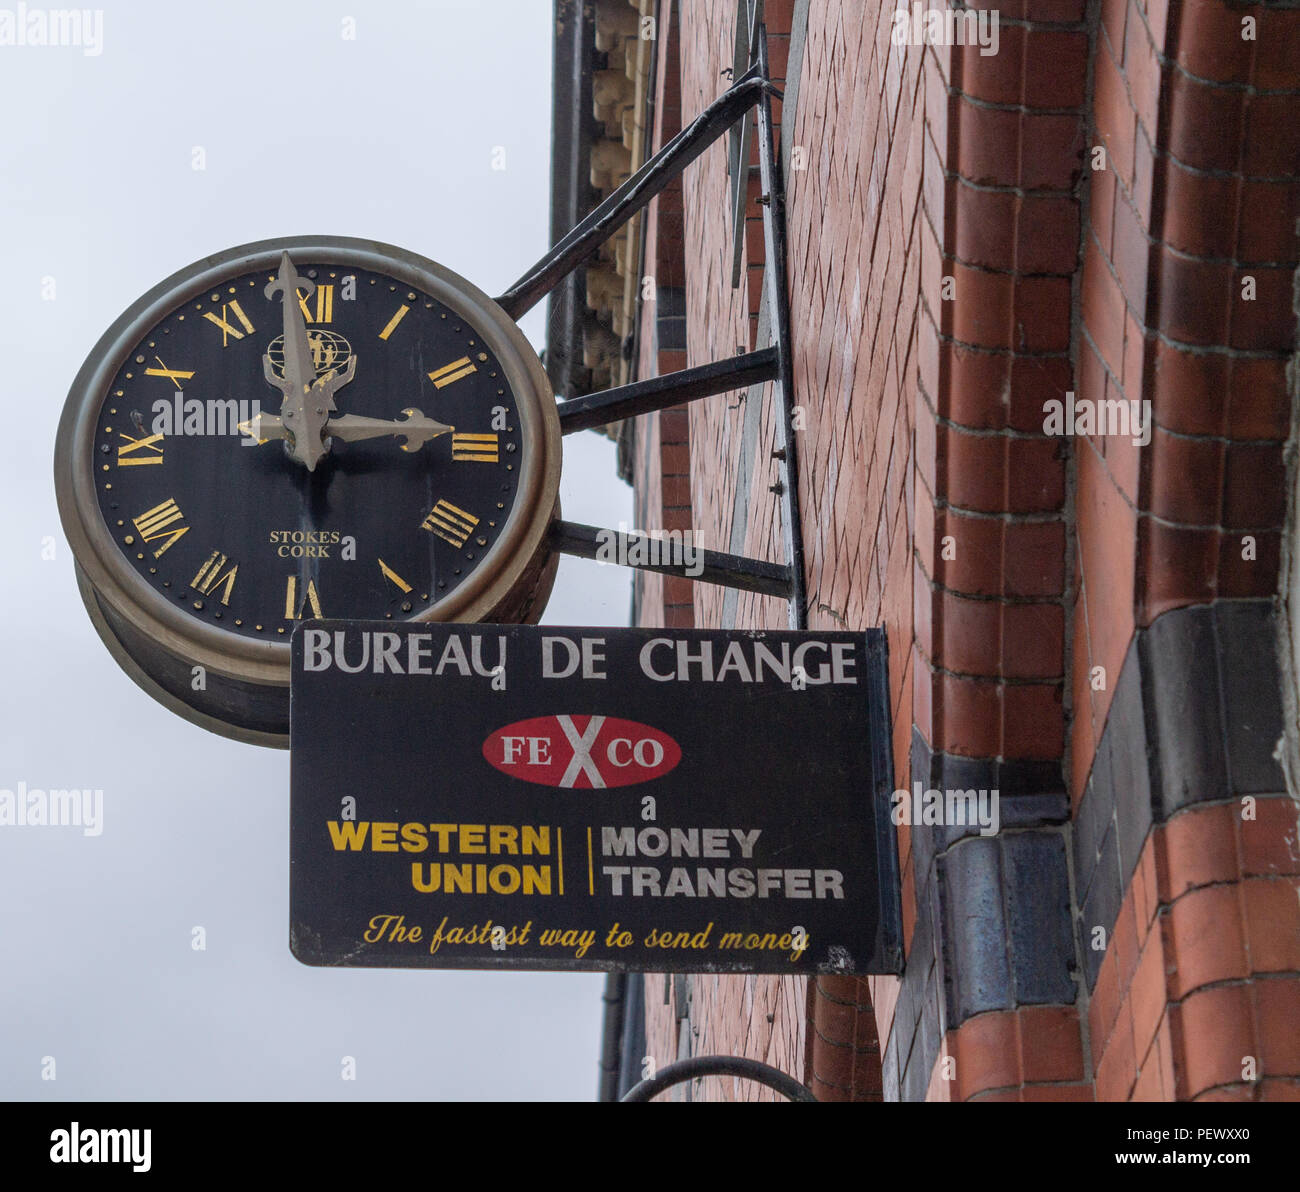 western union sign on a redbrick wall below a large clock face. - Stock Image